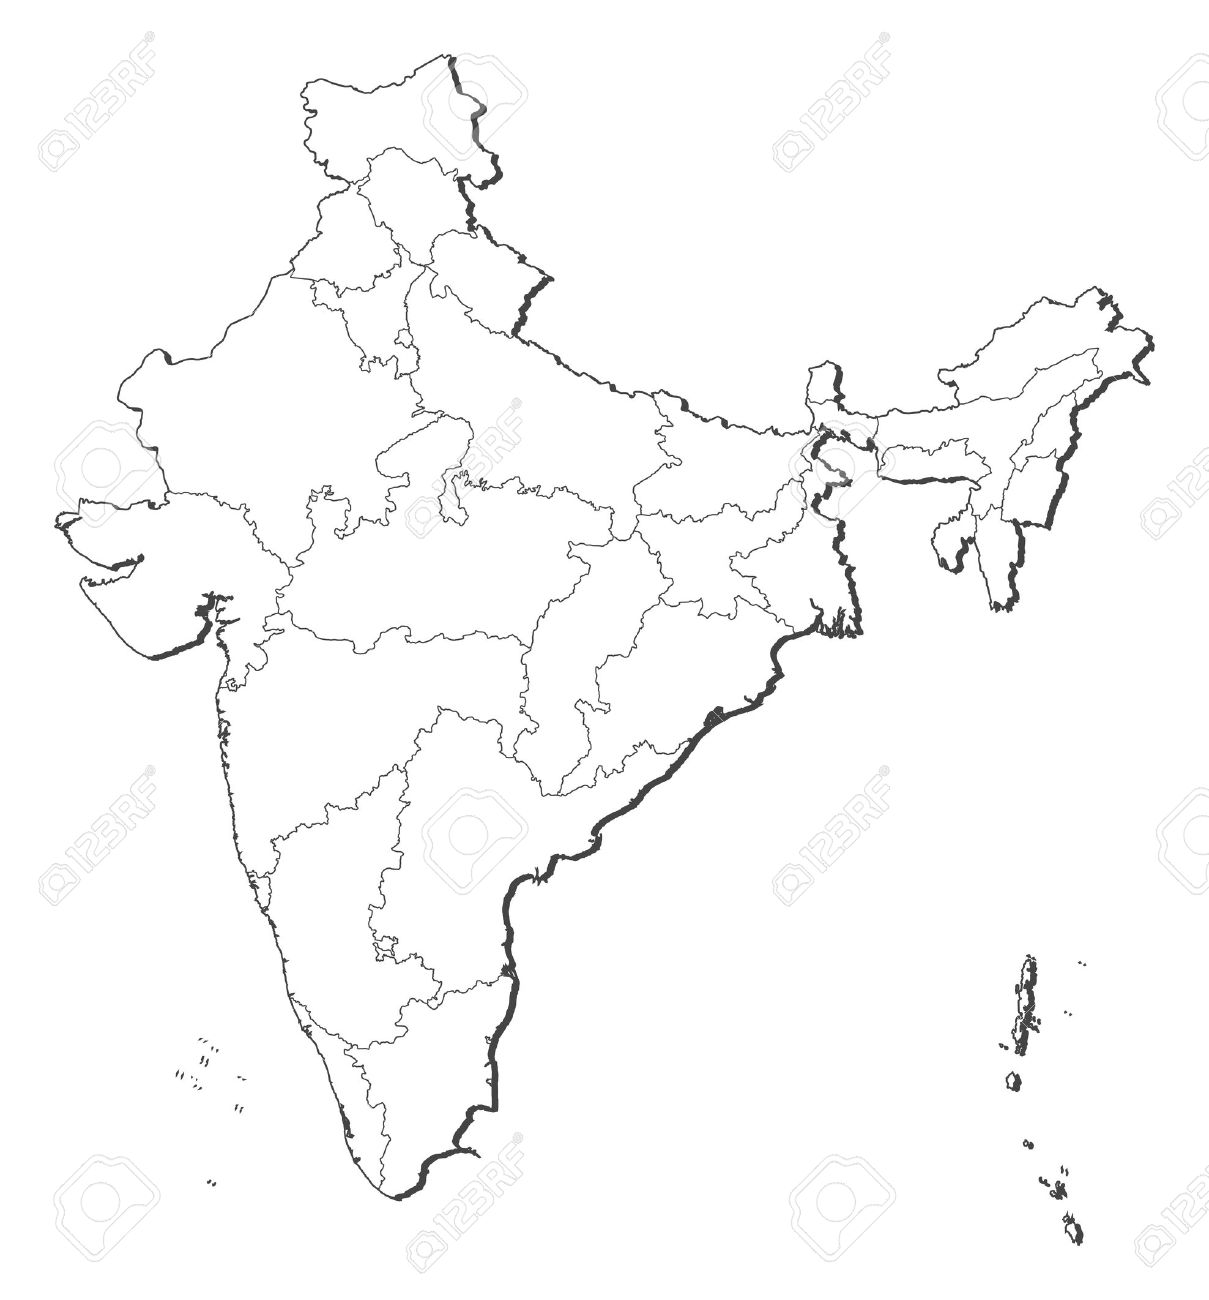 1209x1300 Political Map Of India With The Several States. Royalty Free